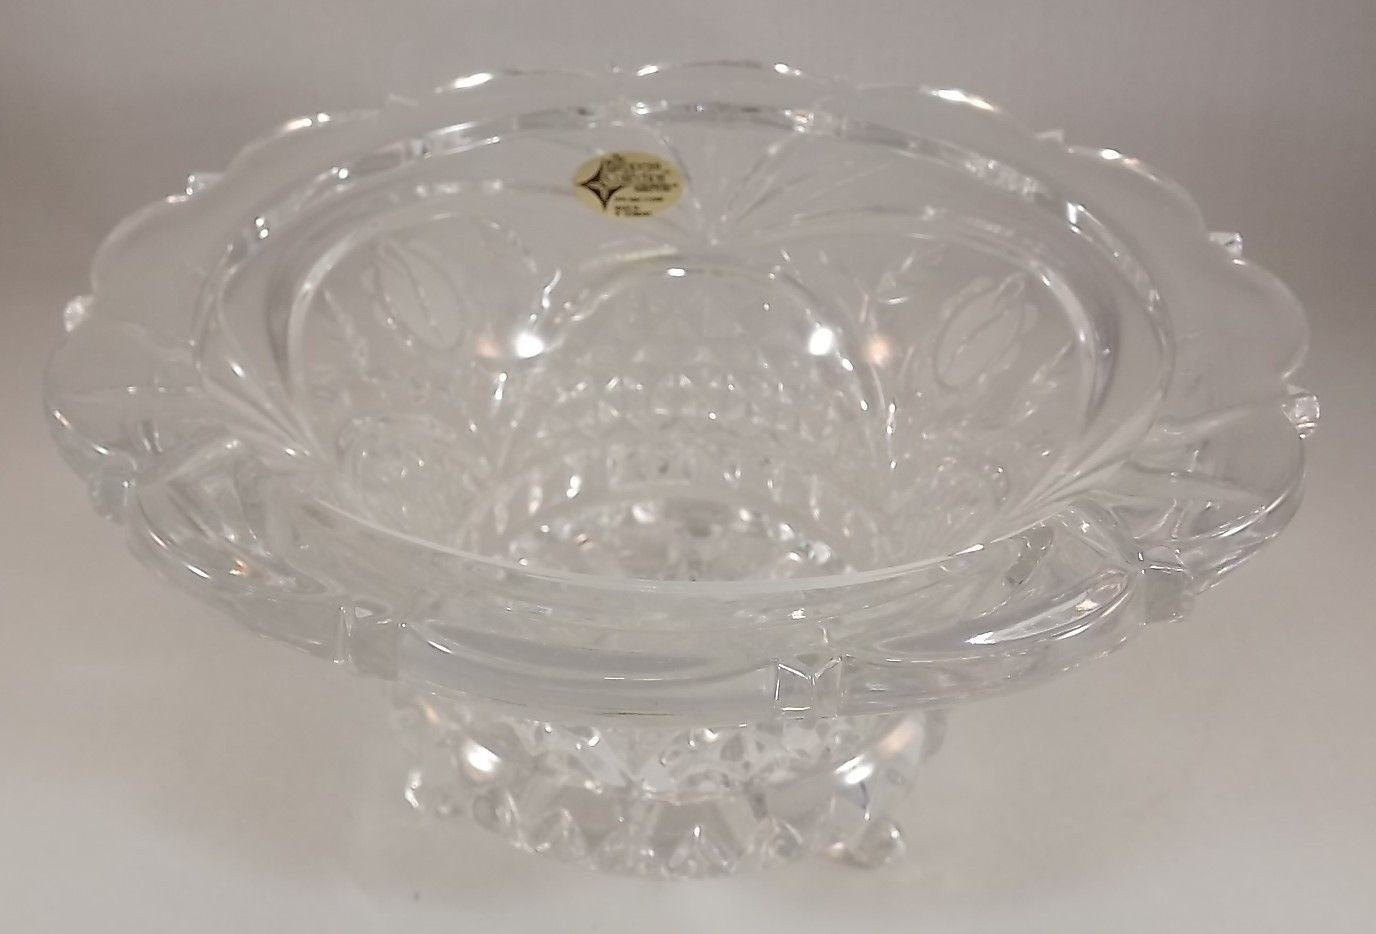 lead crystal vase ebay of the european collection germany 24 lead crystal candy dish bowl art intended for 9 of 10